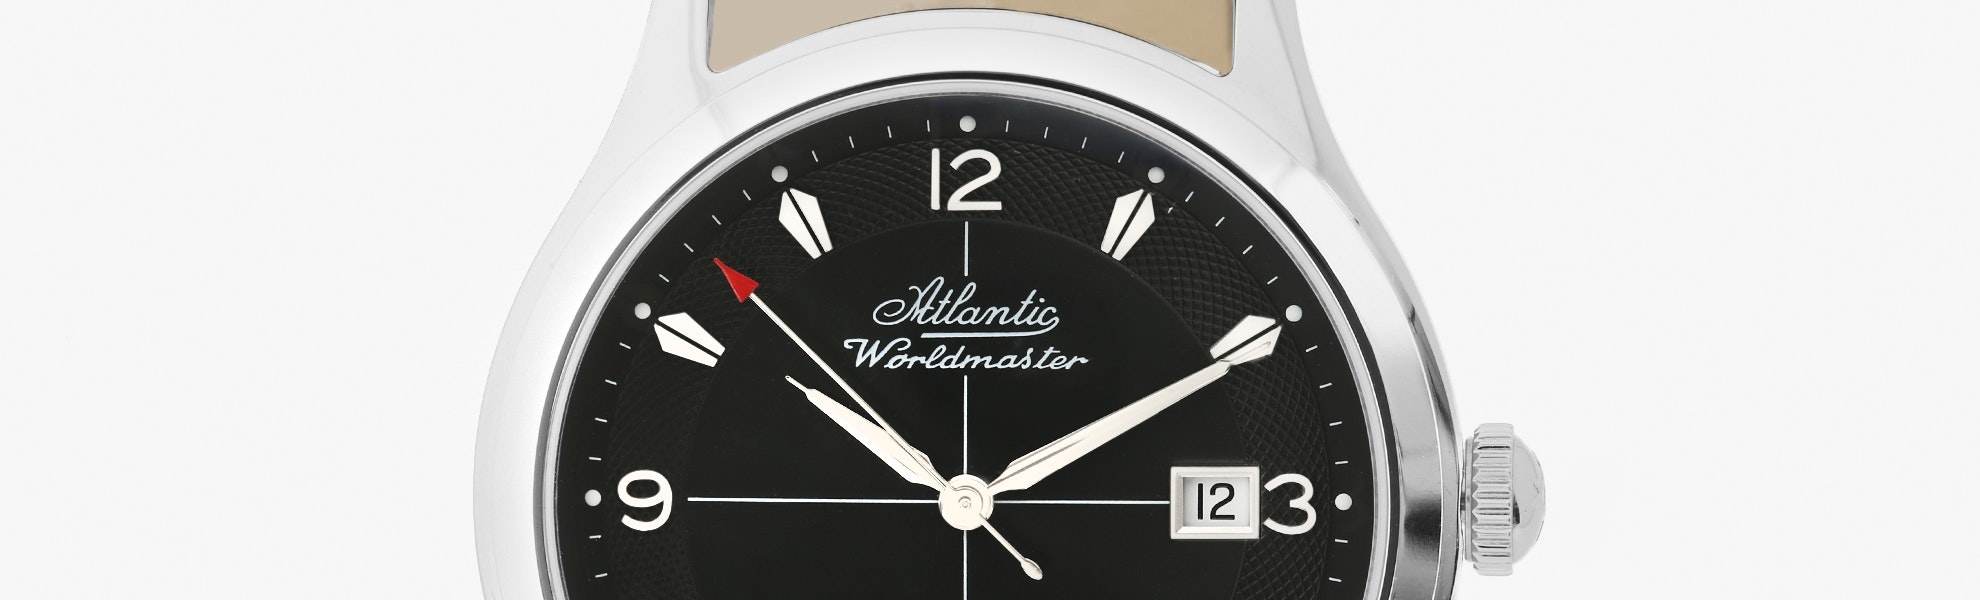 "Atlantic Worldmaster ""Original"" Automatic Watch"